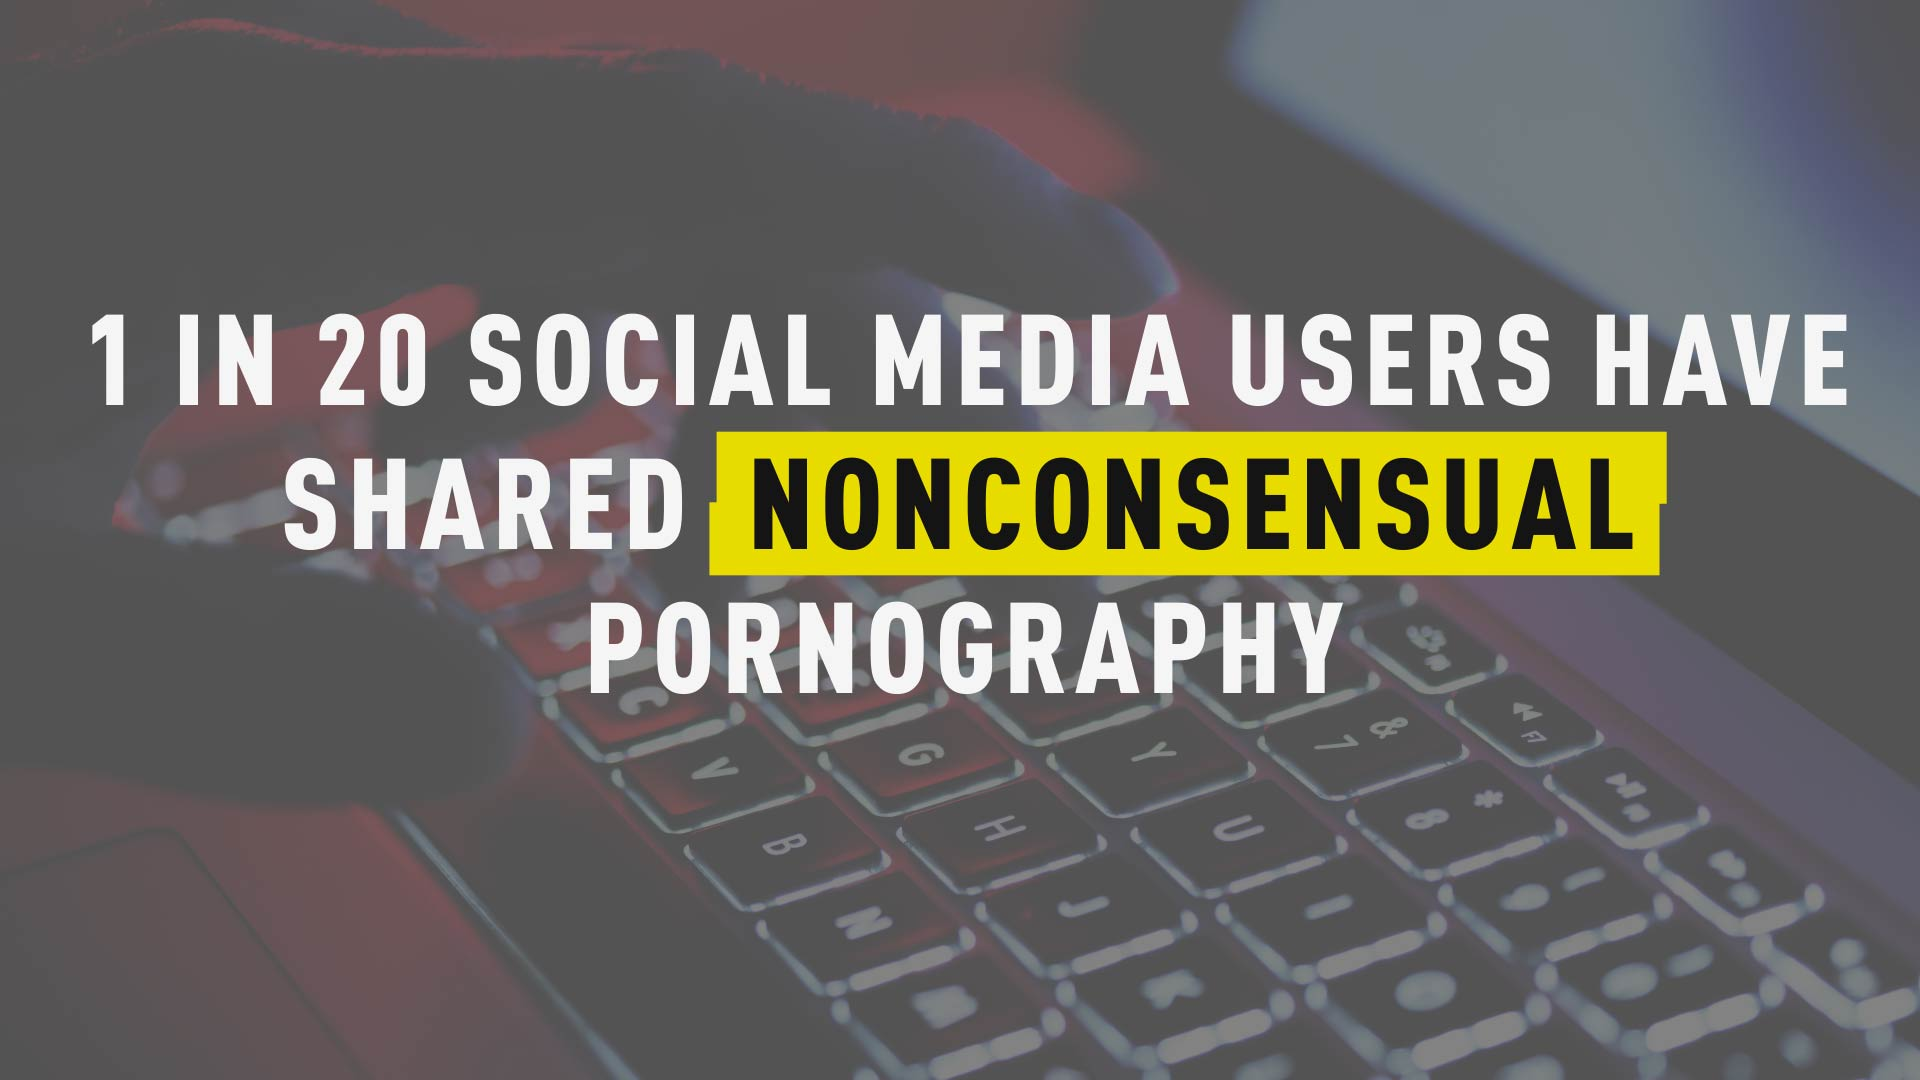 1 In 20 Social Media Users Have Shared Nonconsensual Pornography